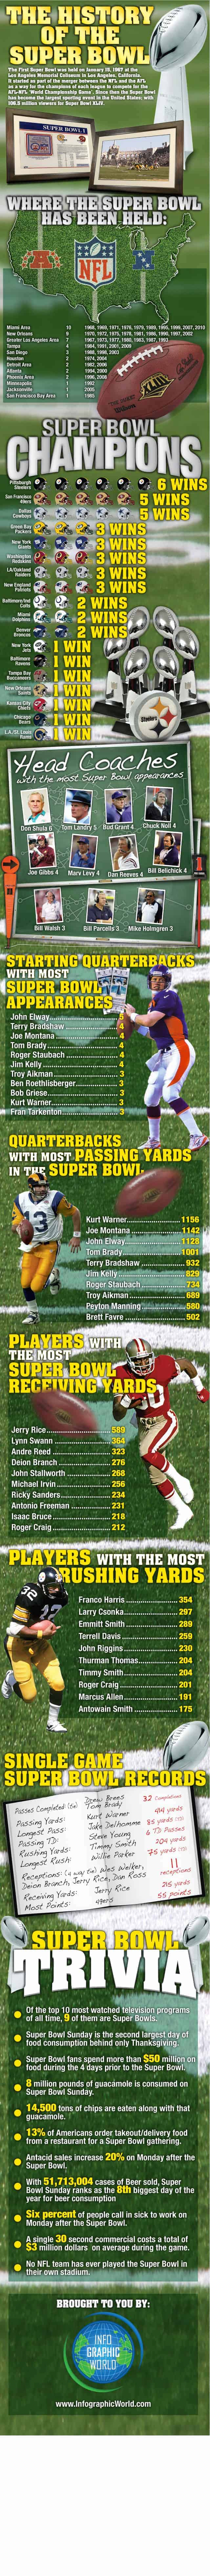 History_of_the_Super_Bowl-1